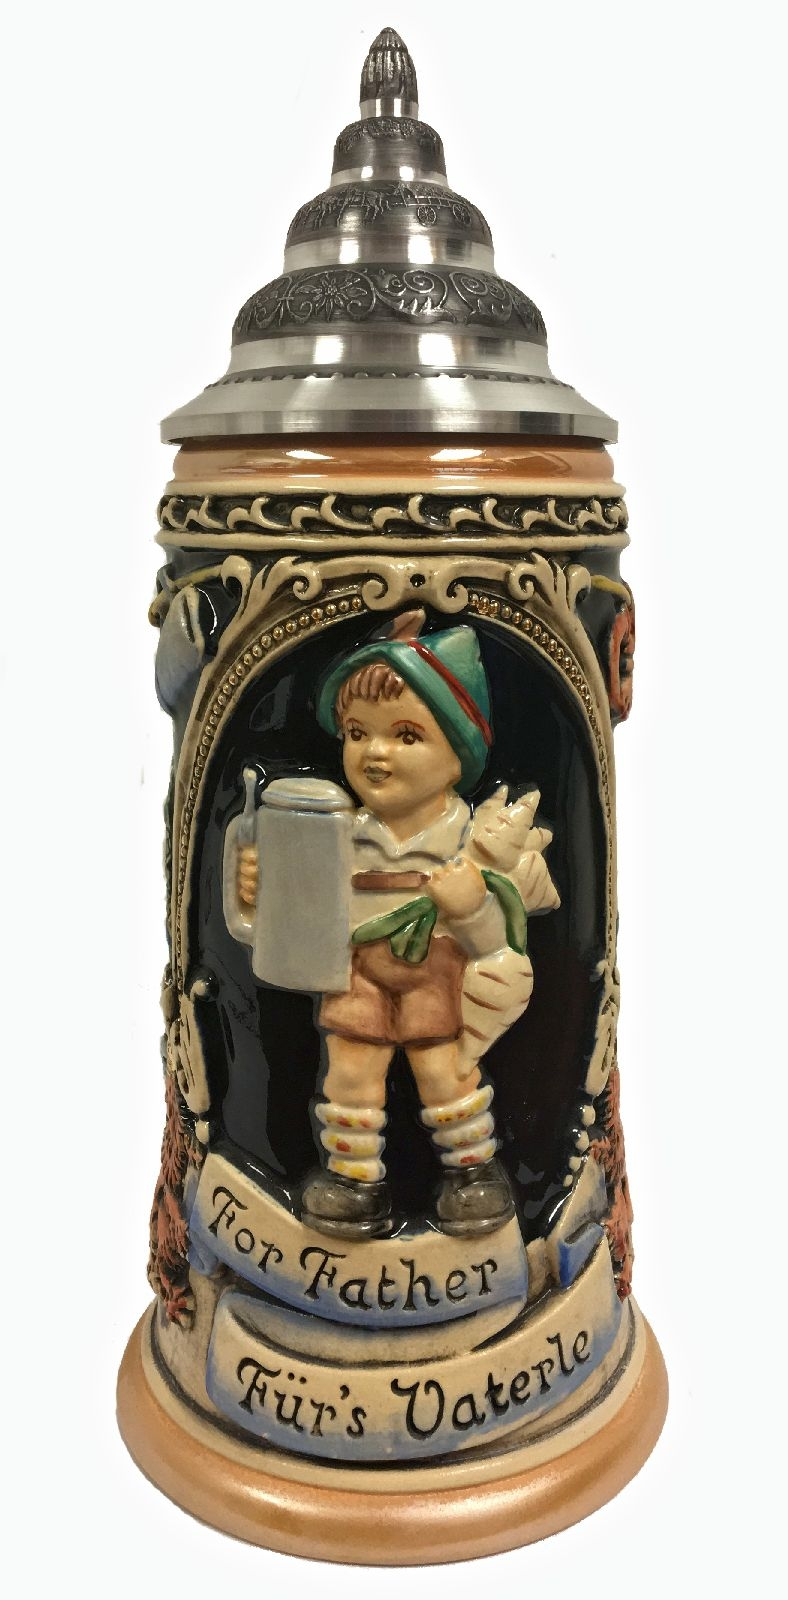 M.I. Hummel For Father LE Stoneware German Beer Stein .75 L Made in Germany